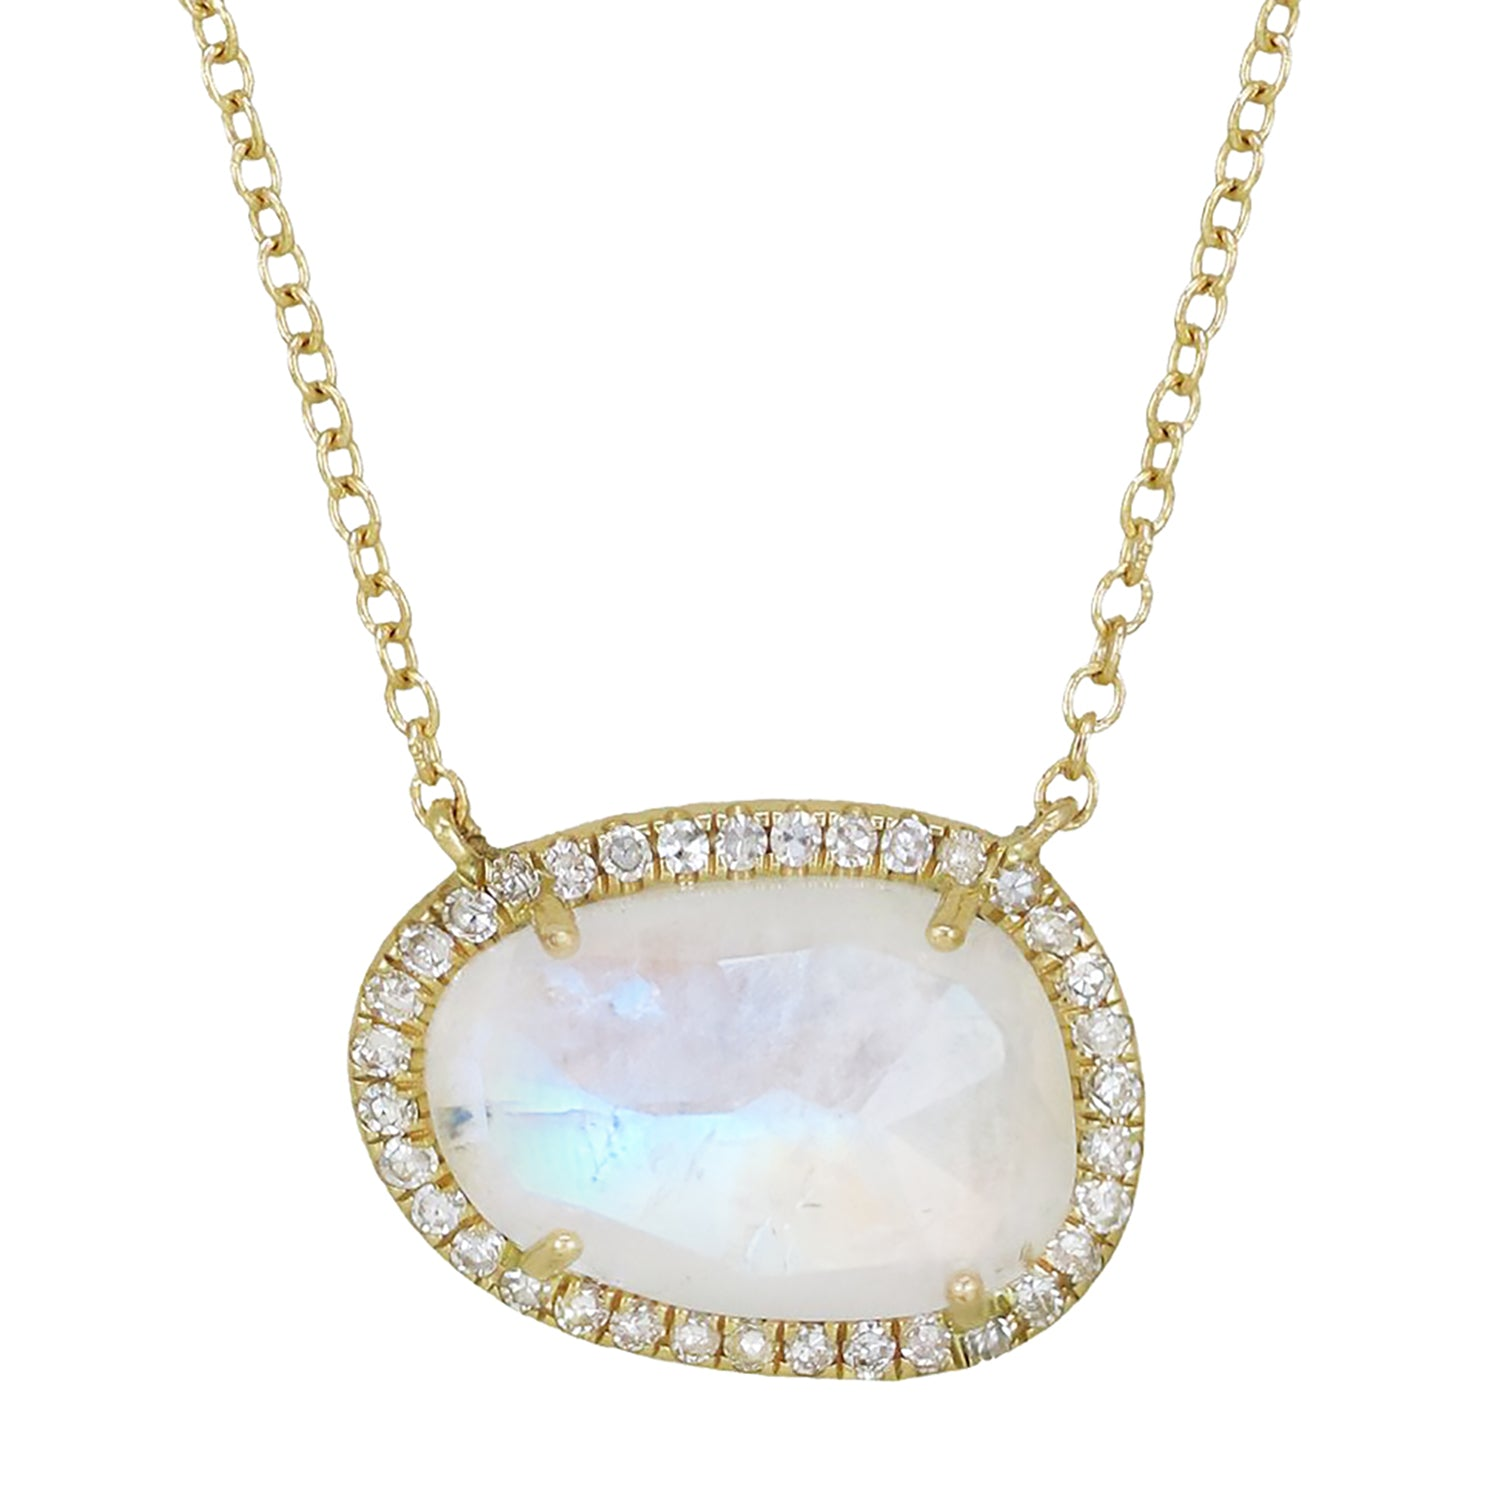 Moonstone Organic Shape Gemstone Necklace With Diamonds in 14k Gold